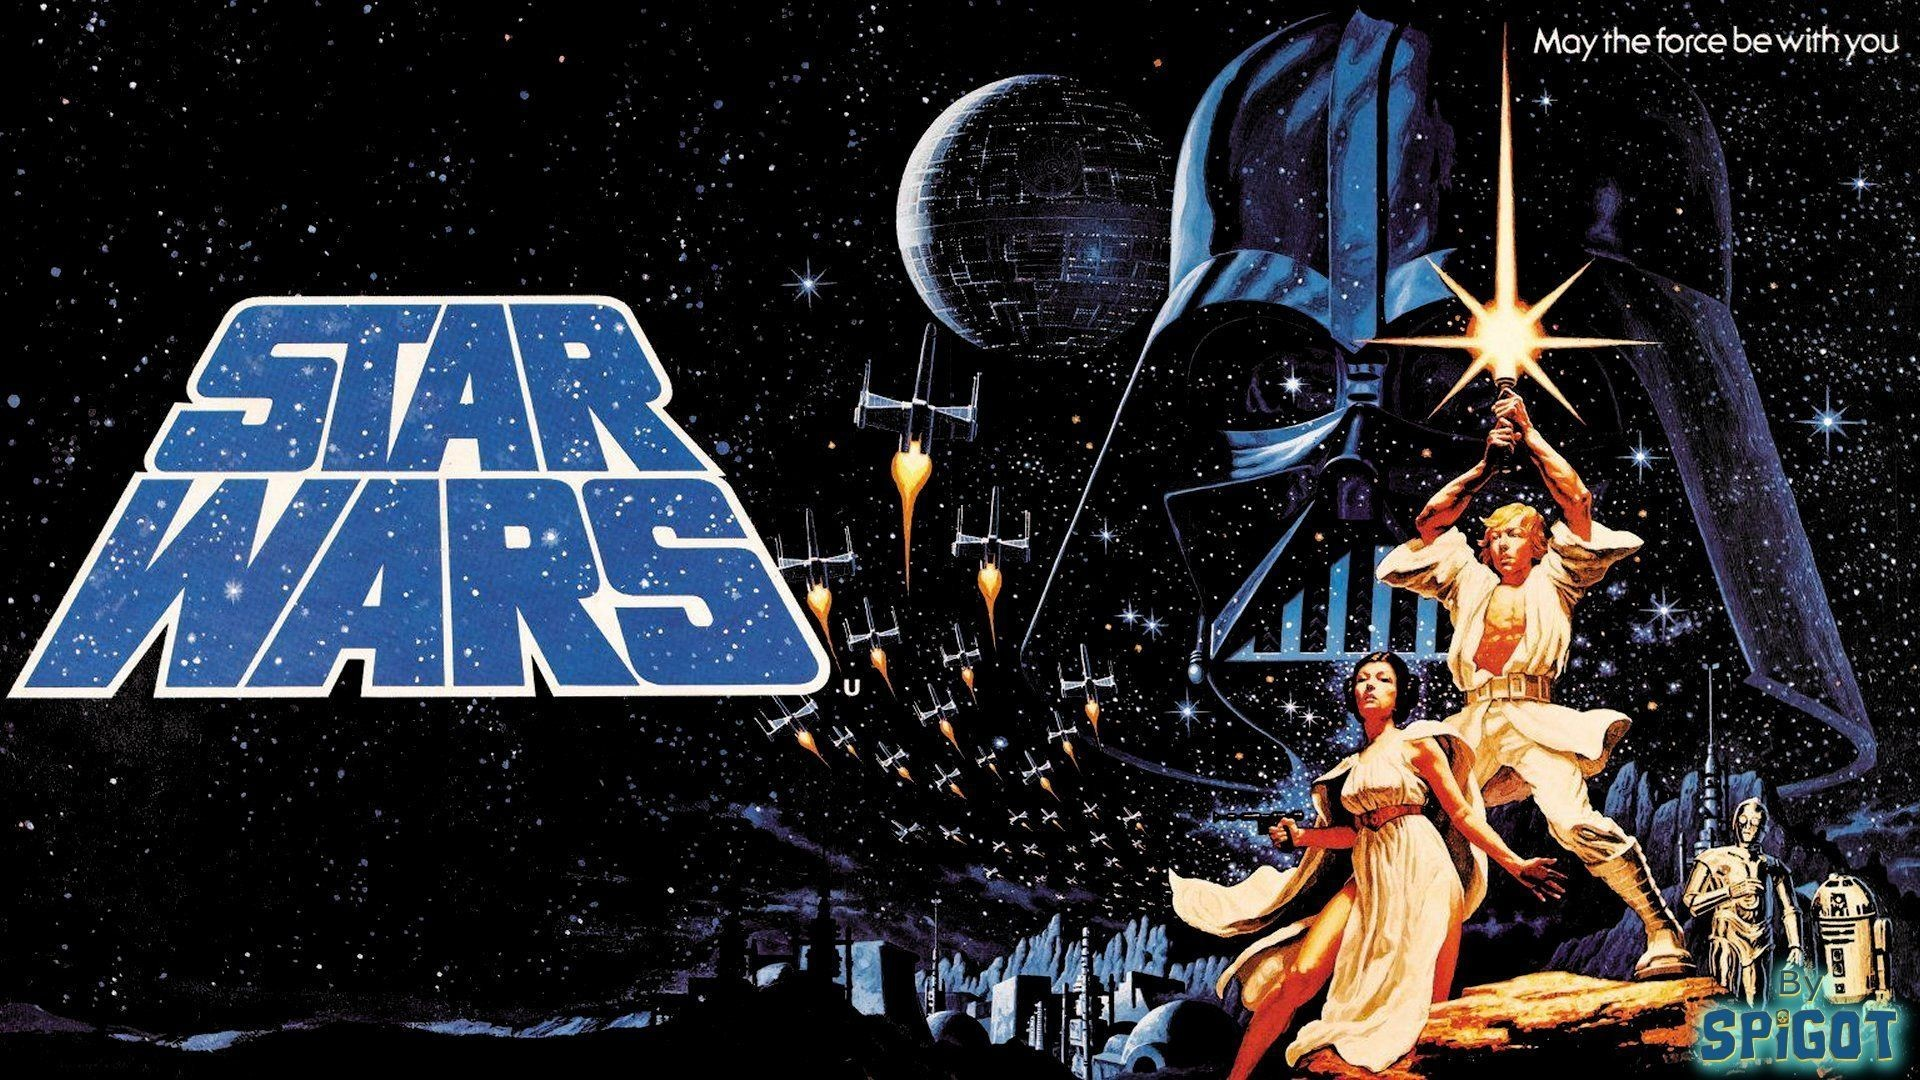 HD Star Wars Wallpaper ·① Download Free Awesome